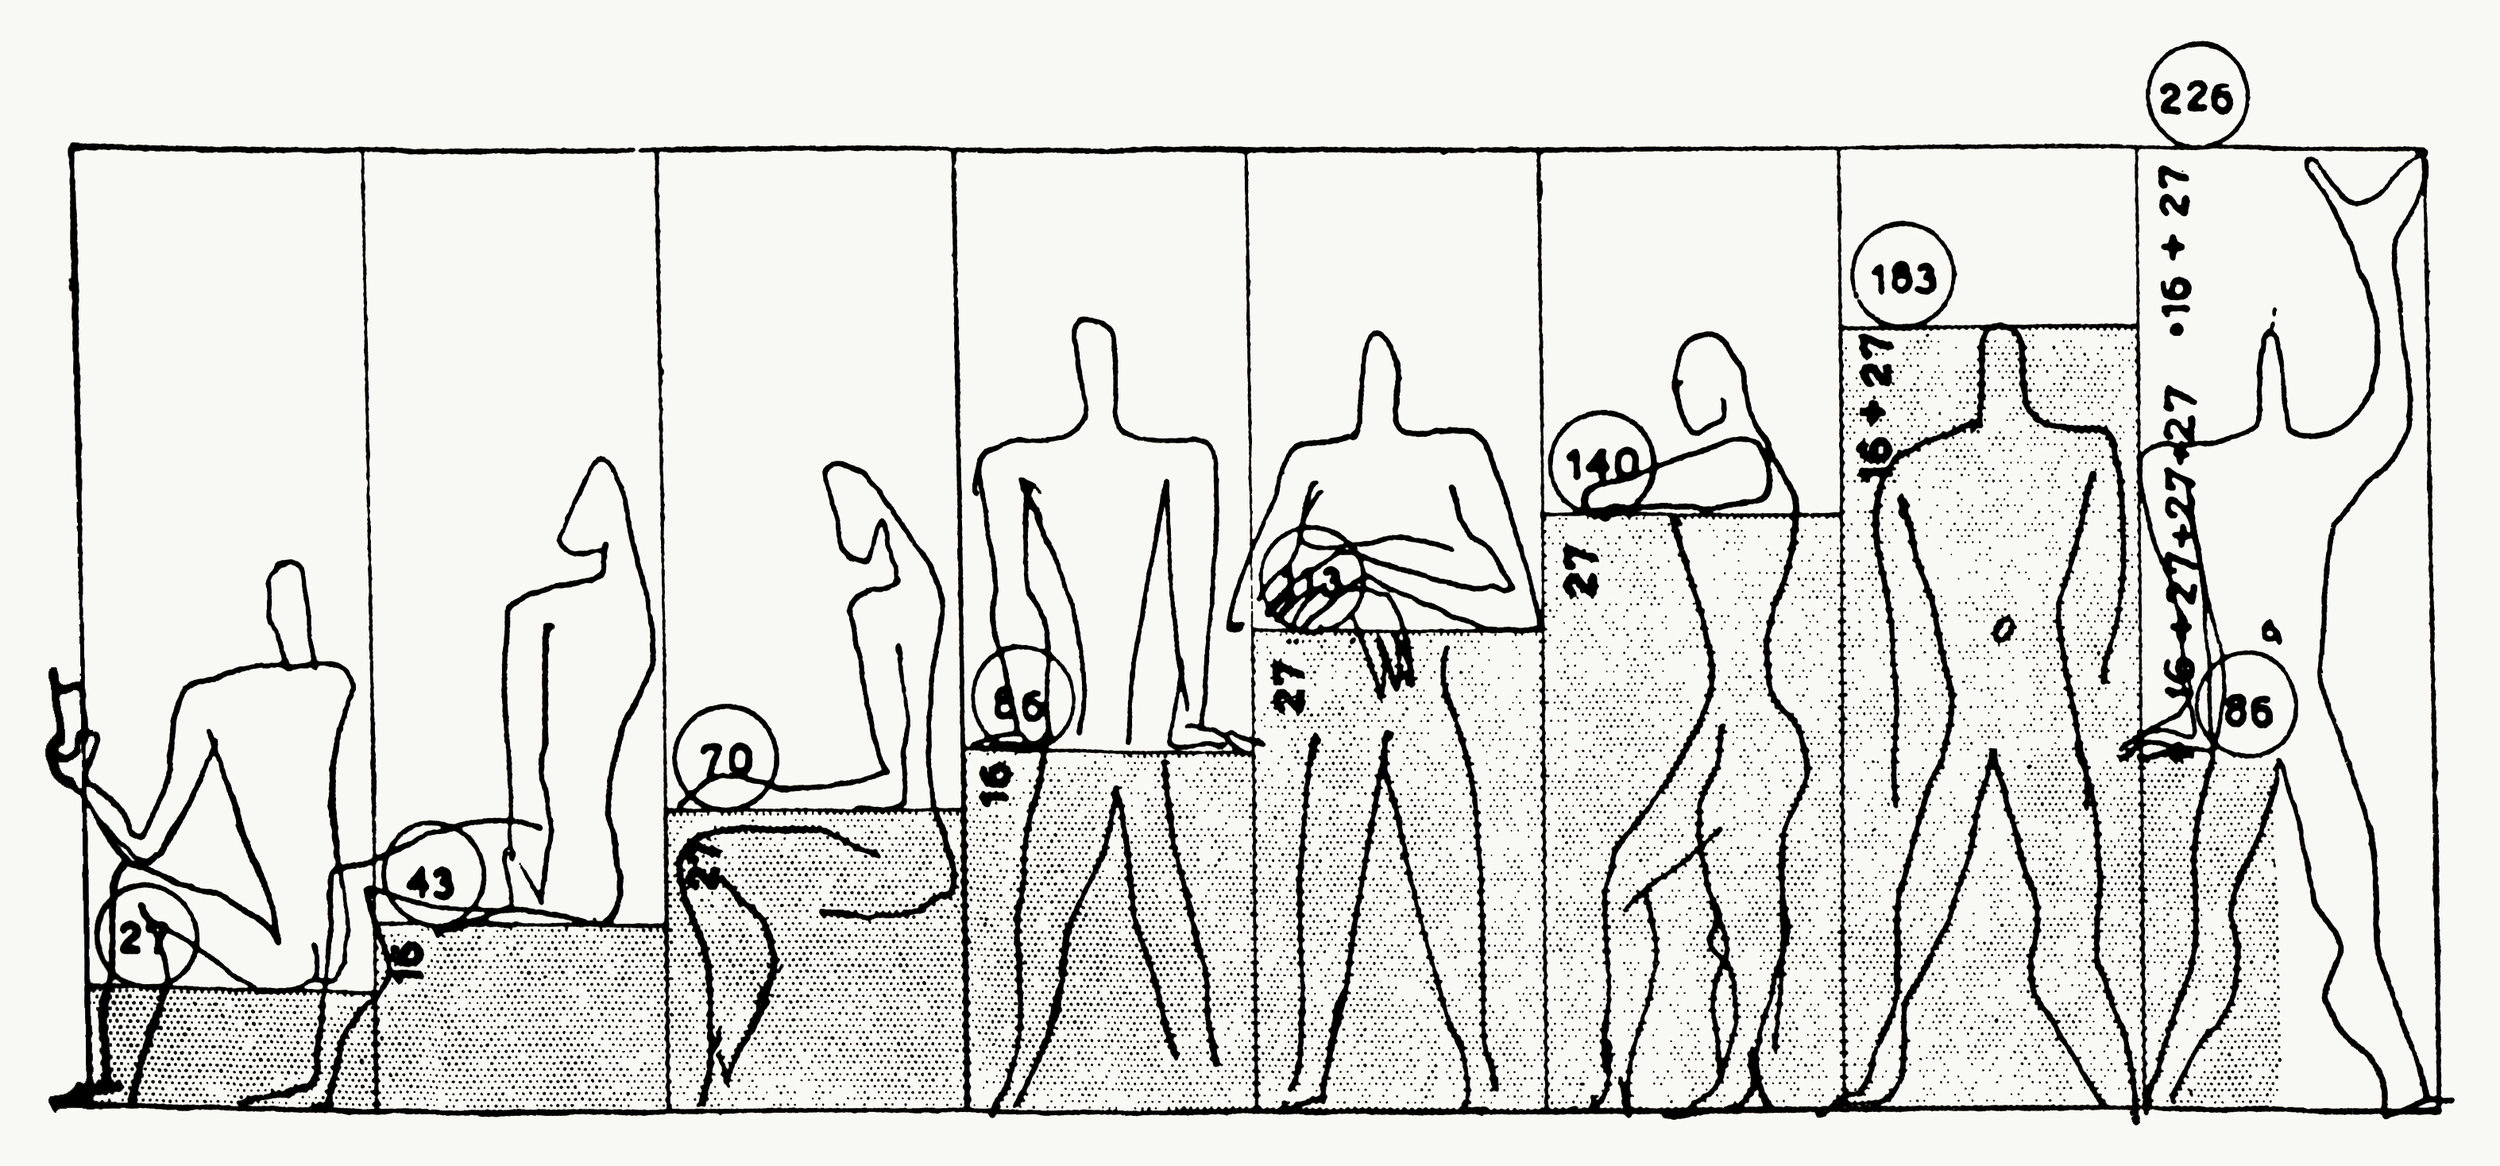 'The Double Unit' derives from Le Corbusier's theory of mathematical proportions in the human body which can be used to improve the appearance and function of architecture and space. Our approach matches the human figure as imagined by Le Corbusier – its feet planted firmly on the ground, centred and proportioned, with its hand pointing to the sky.